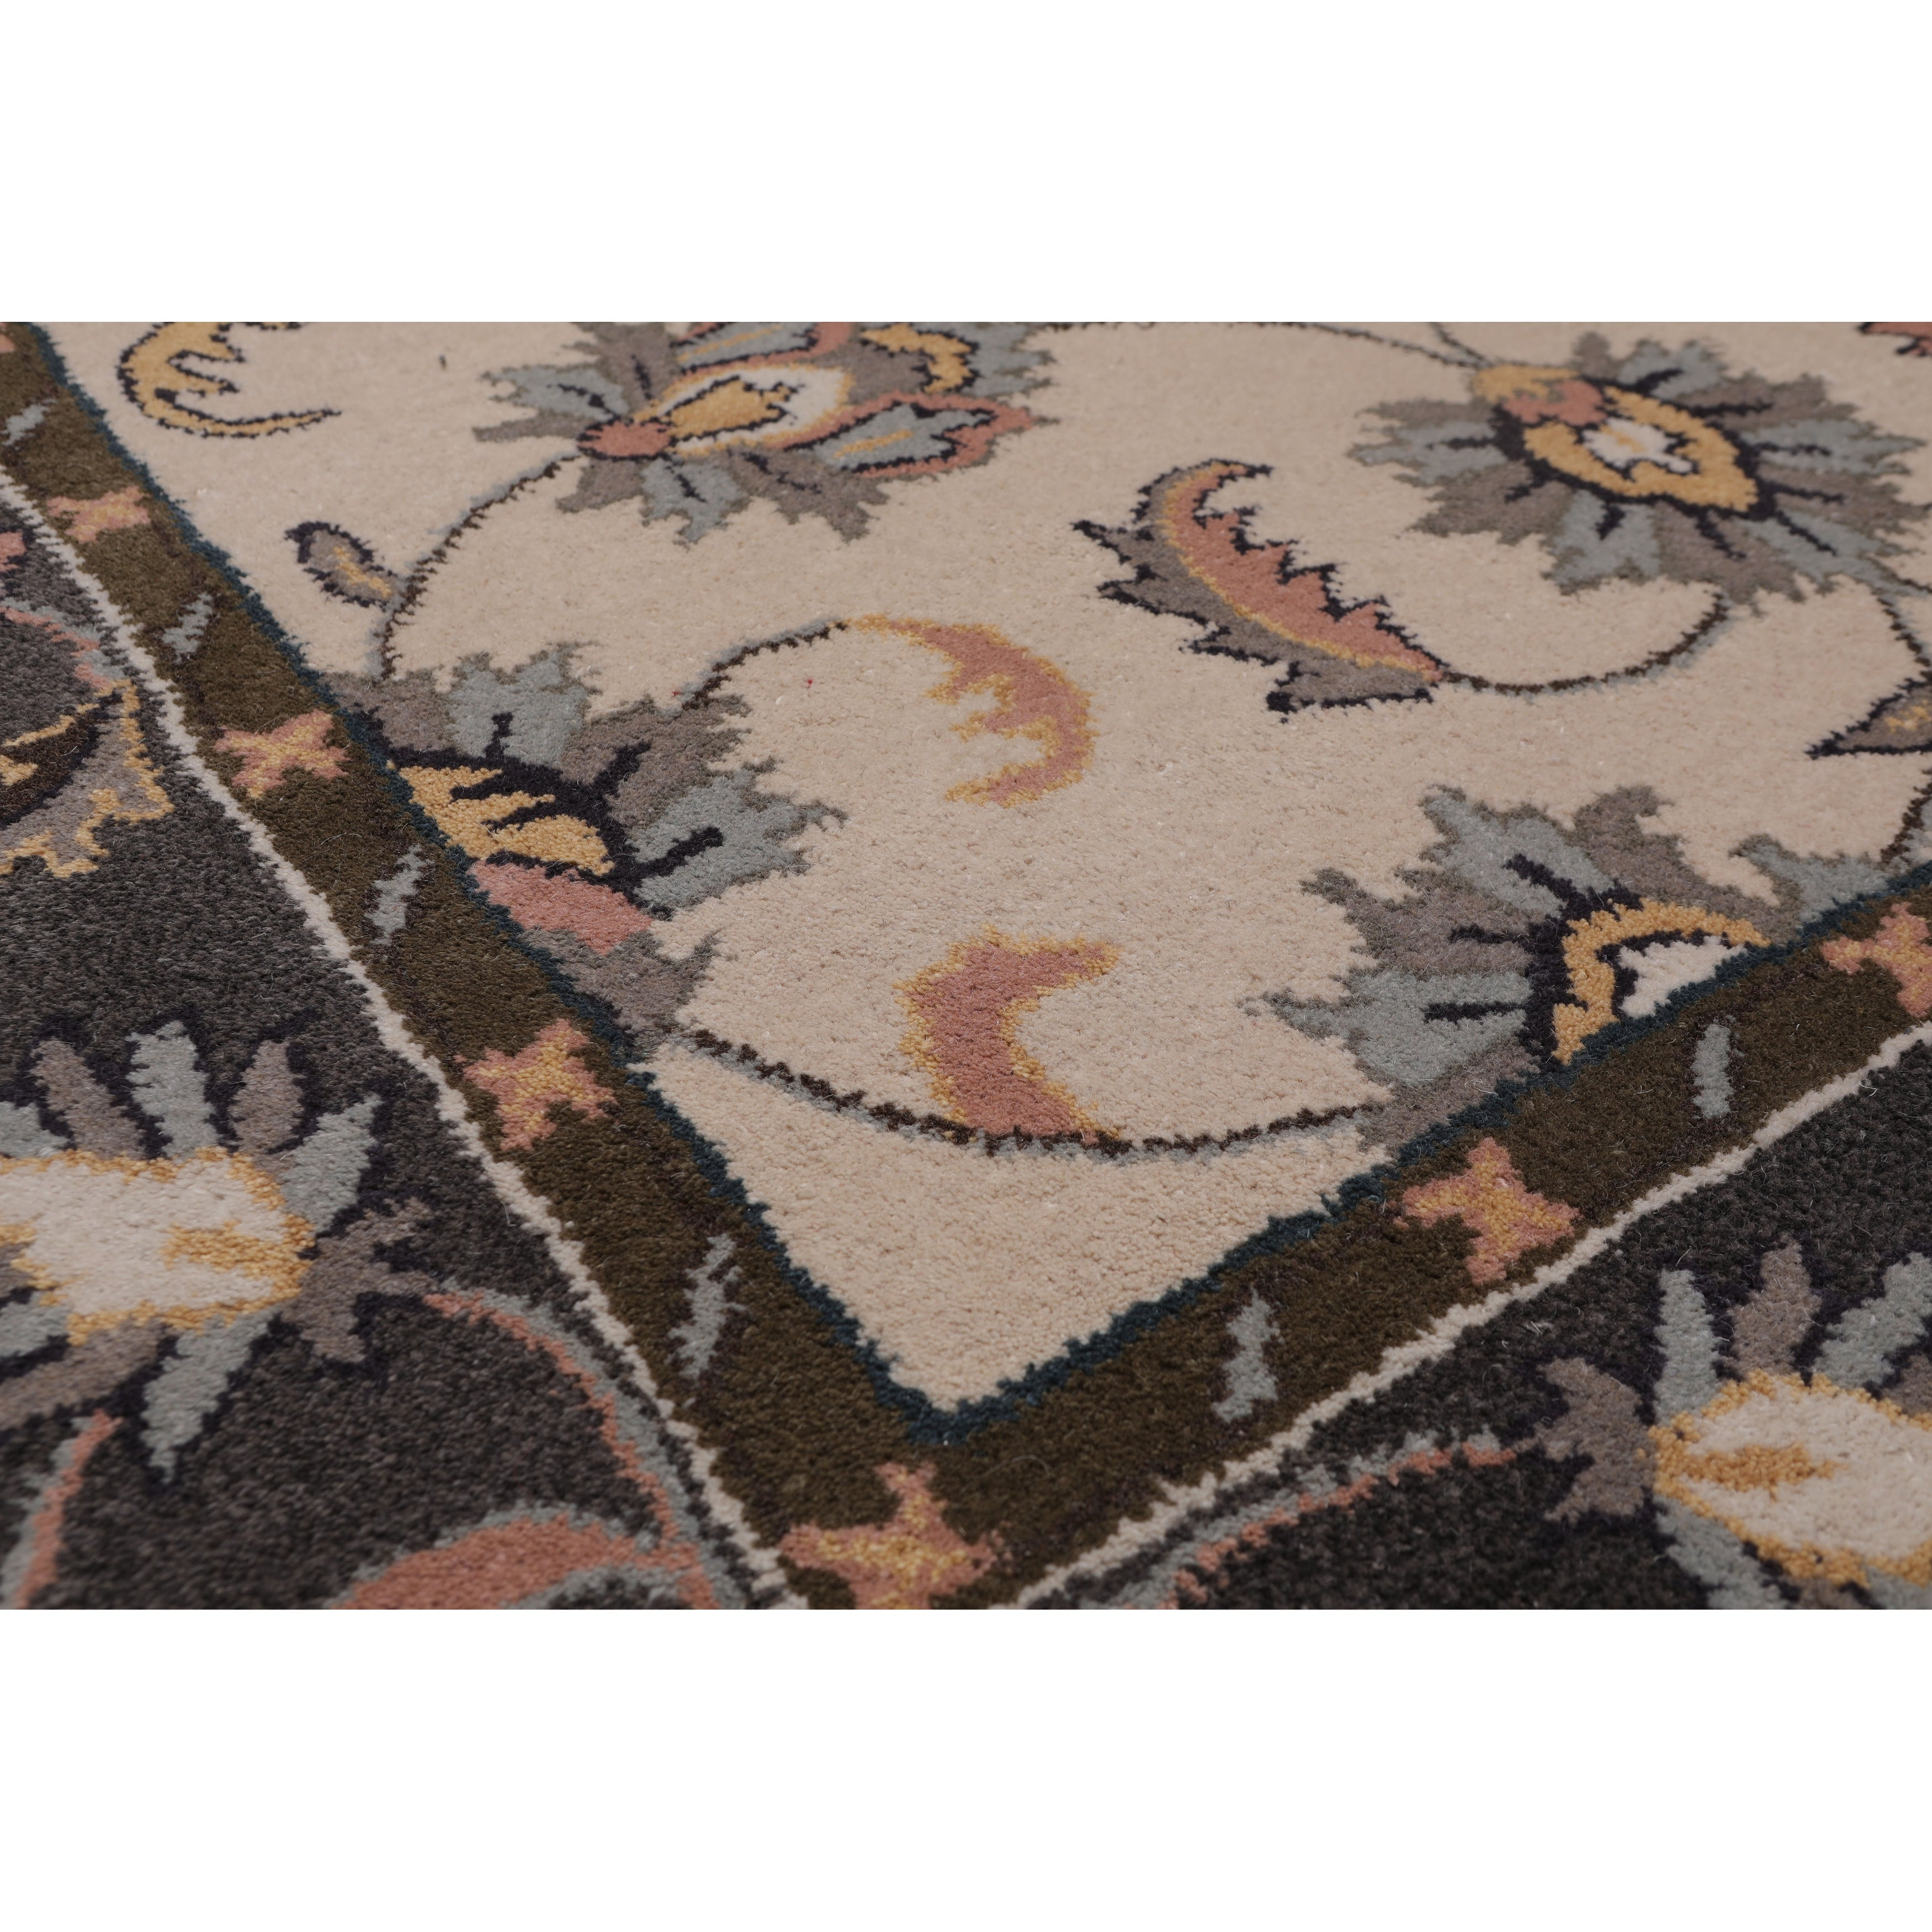 5 X8 Hand Tufted Wool Floral Kashan Oriental Area Rug Beige Grey Color 5 X 8 On Sale Overstock 31310720